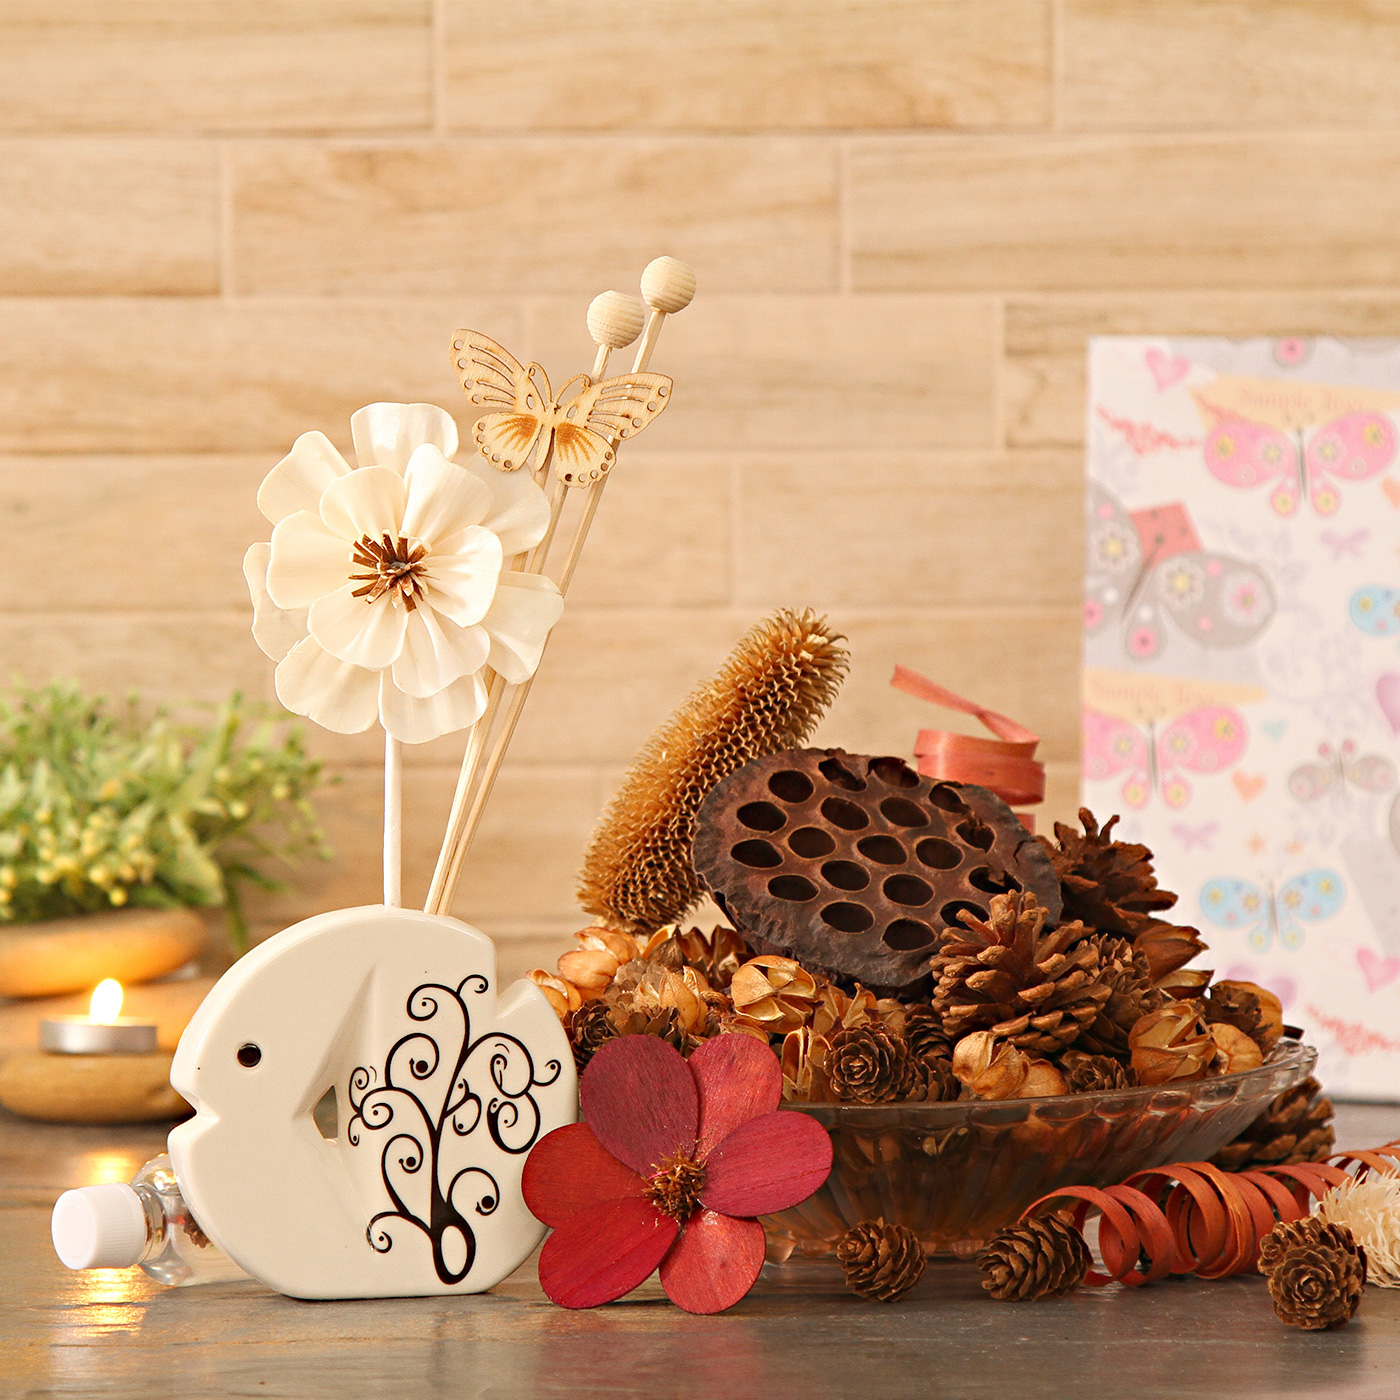 Scented Floral Potpourri with Flower Pot